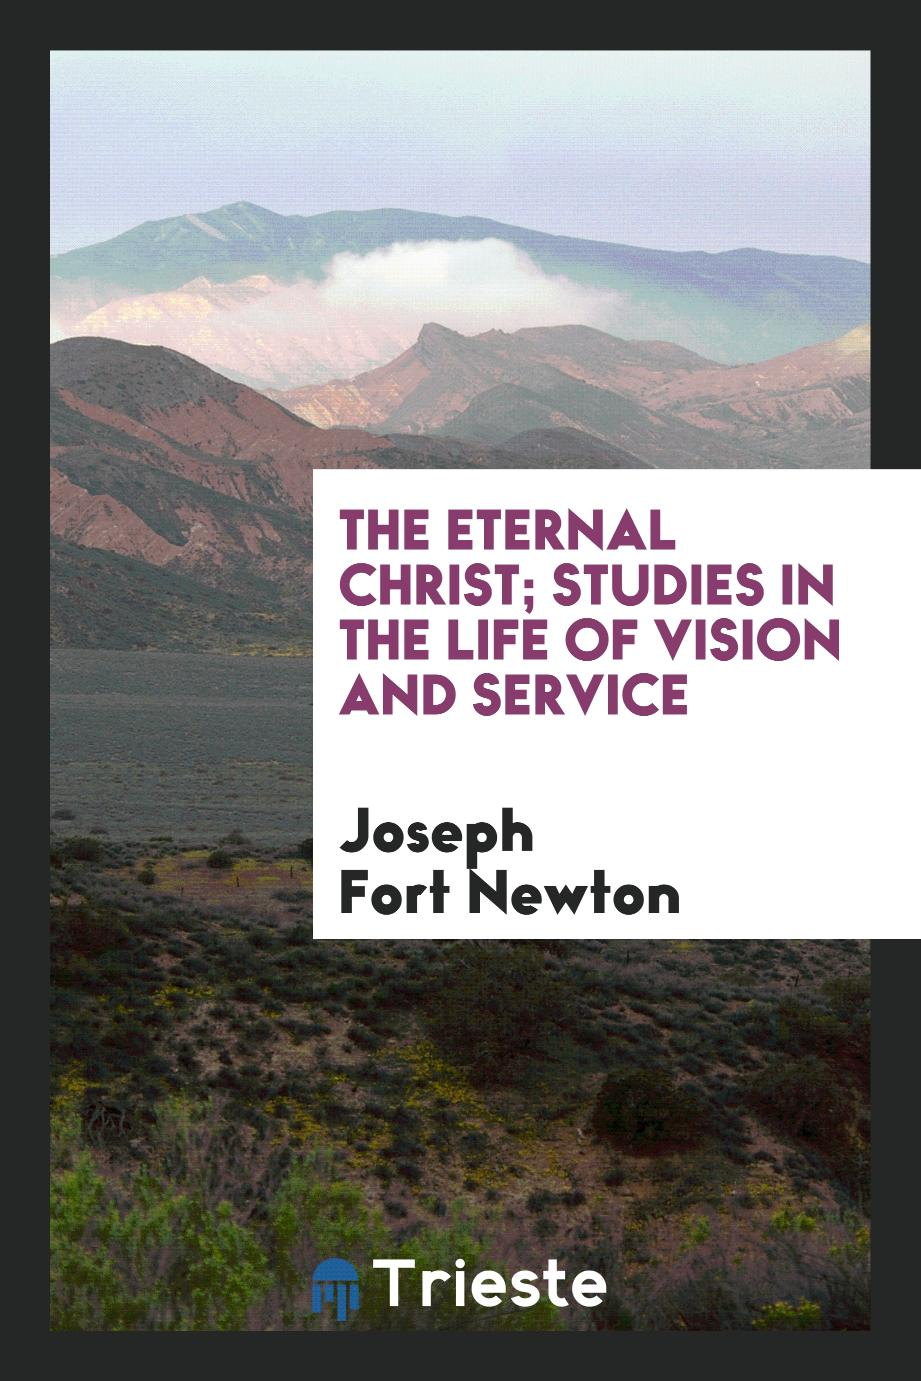 The eternal Christ; studies in the life of vision and service